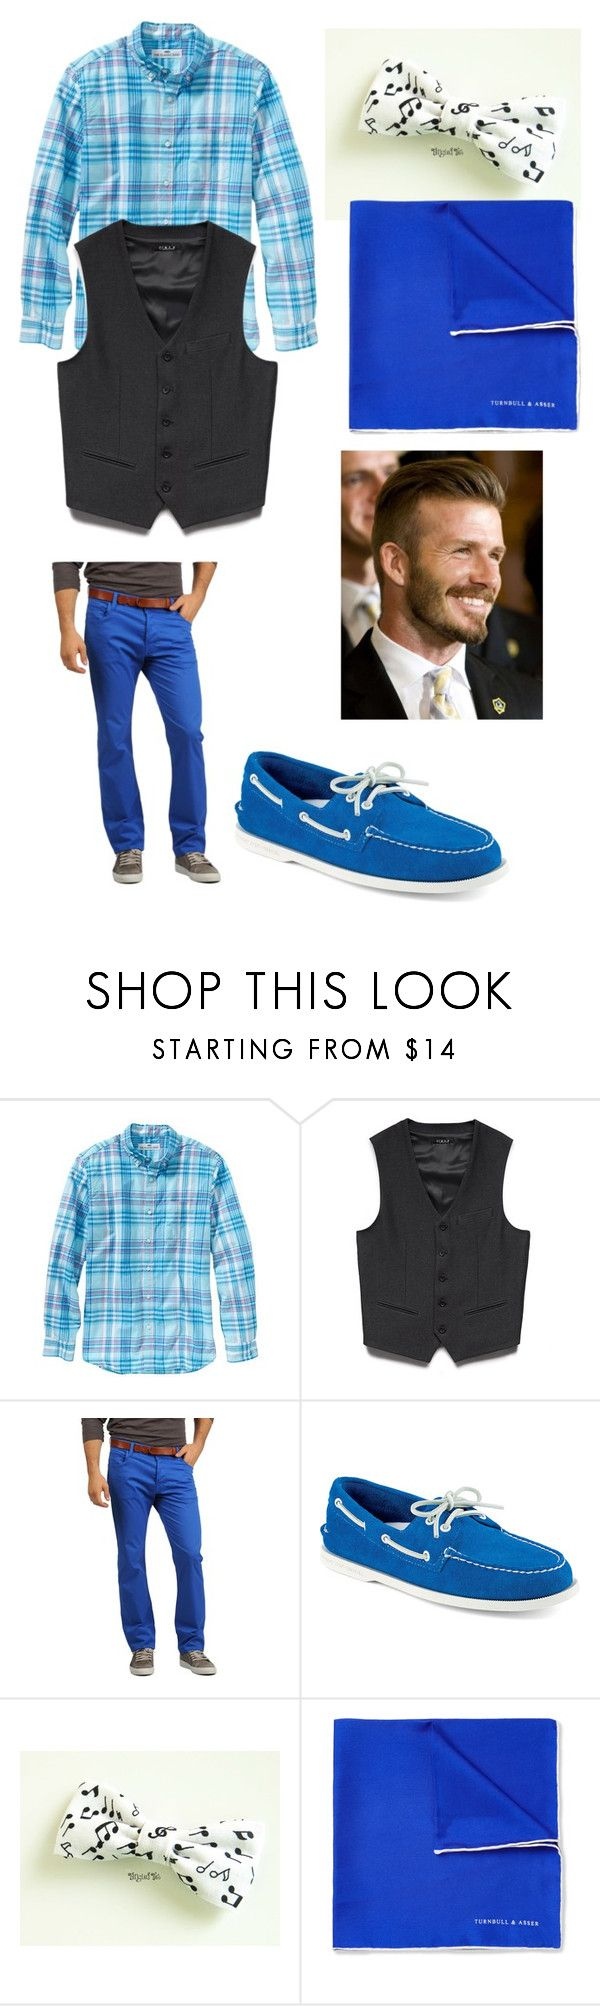 """blaine anderson style"" by ncstategal ❤ liked on Polyvore featuring Old Navy, 21 Men, Italia Independent, Sperry, Turnbull & Asser and David Beckham"